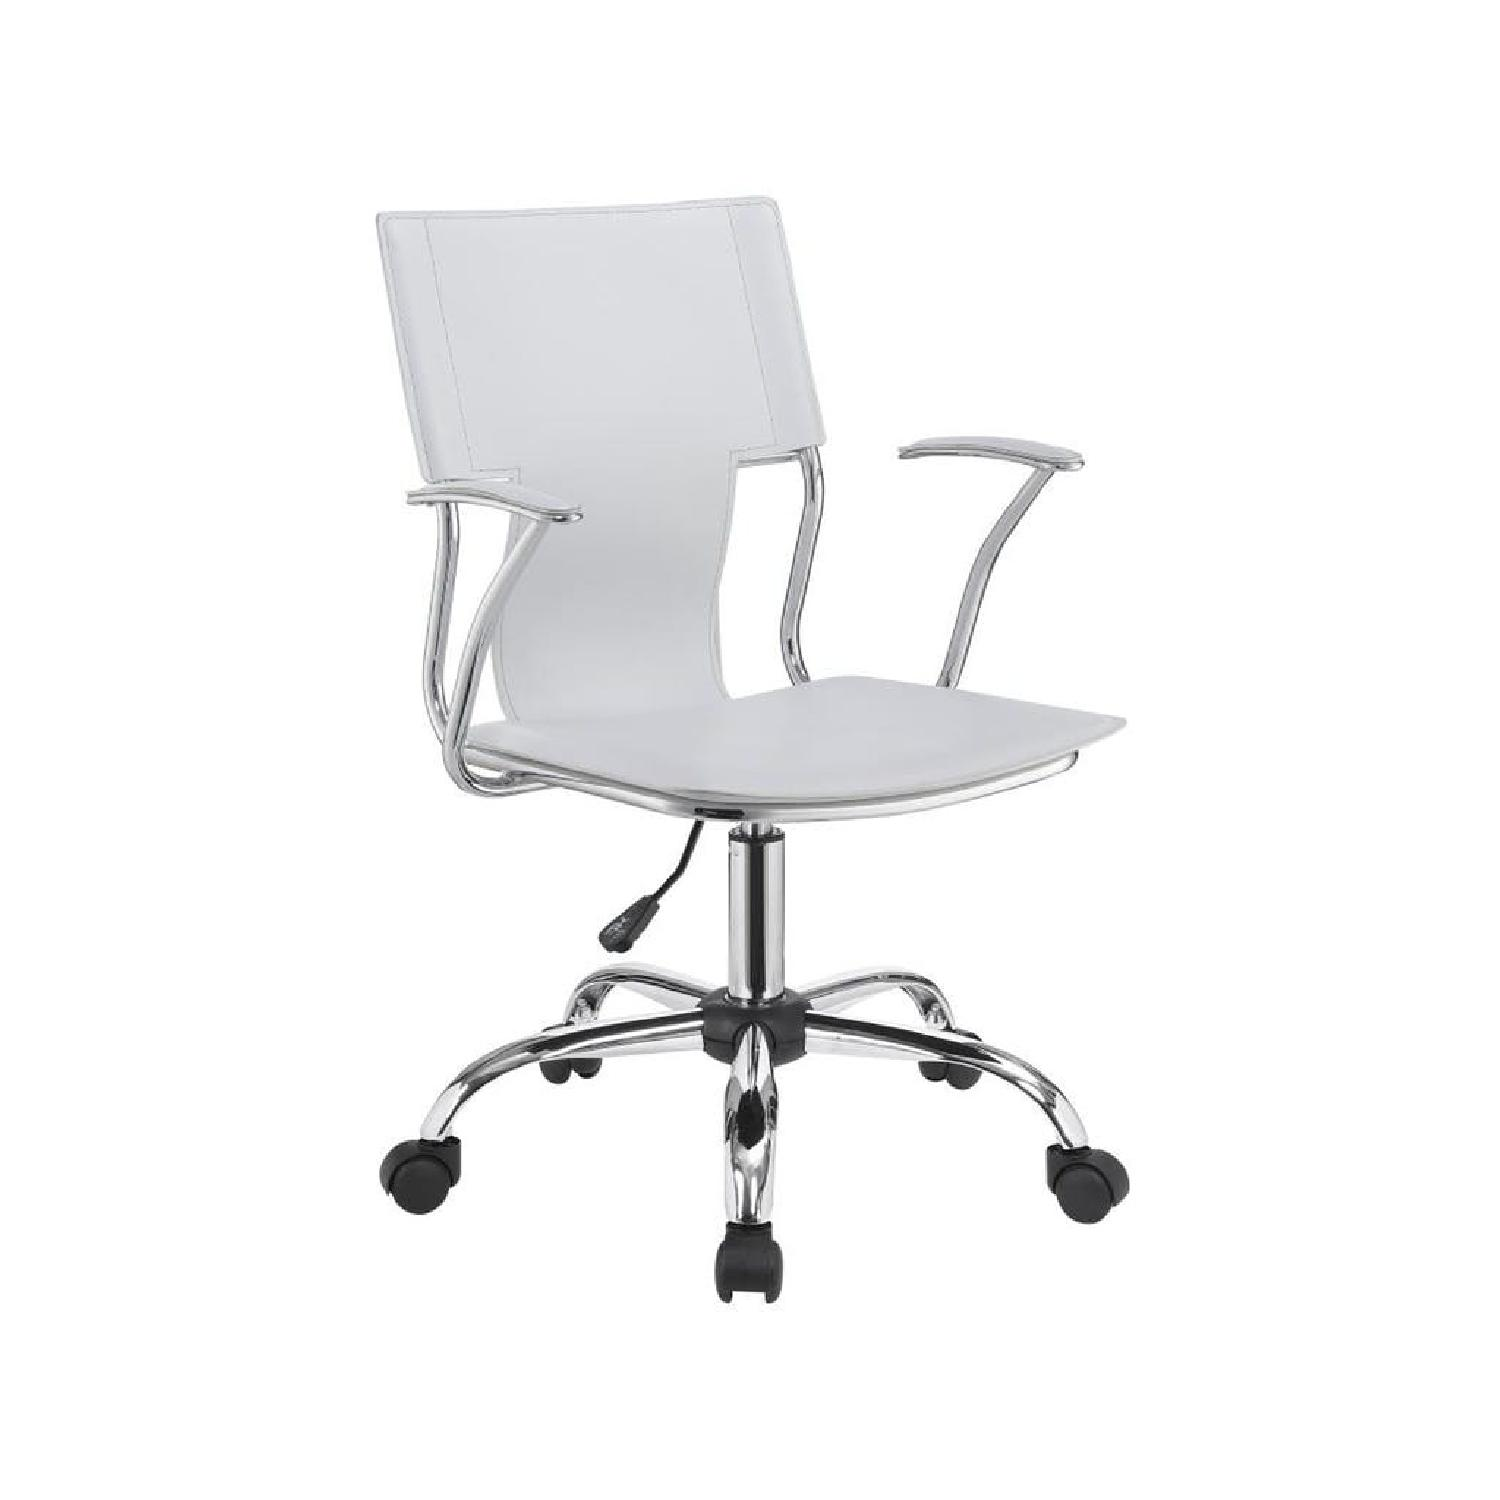 Modern Office Chair in White Leatherette w/ Chrome Legs